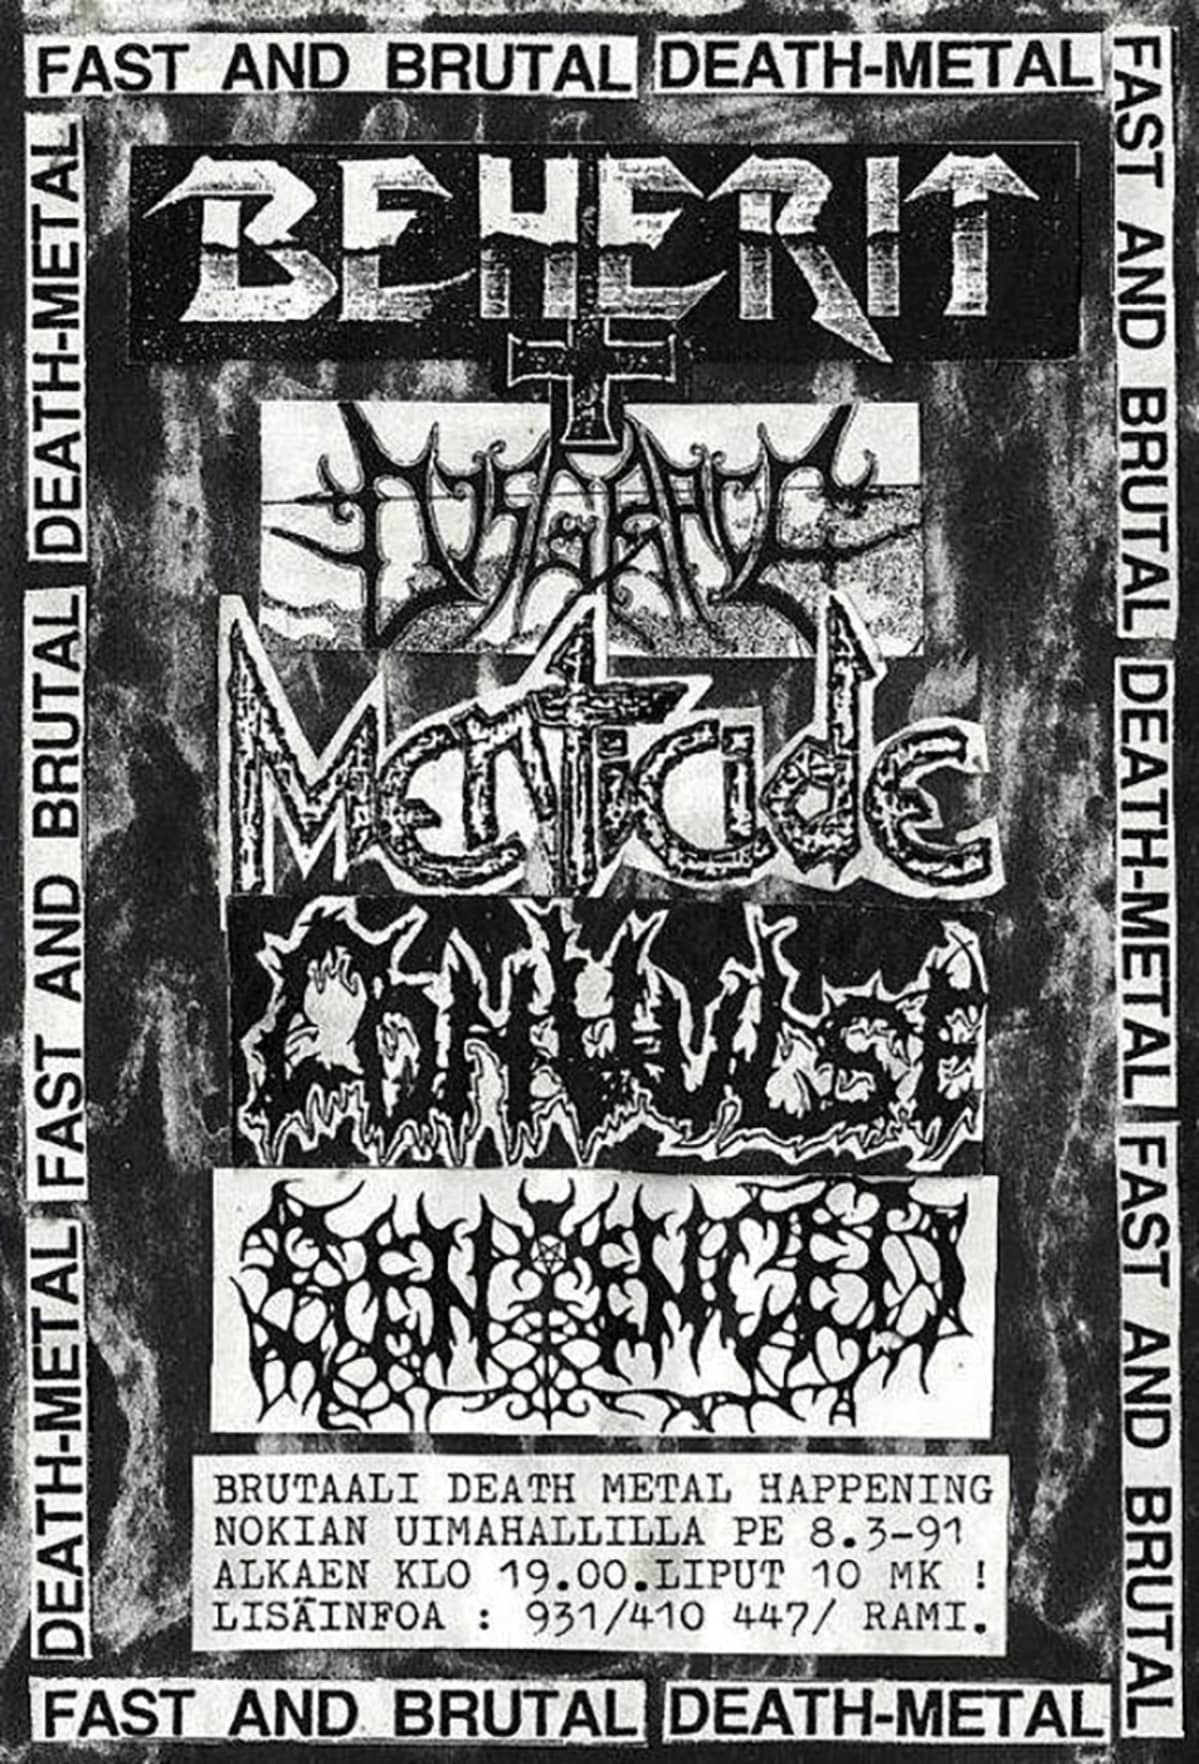 Rotting Ways to Misery, death metal, flyer